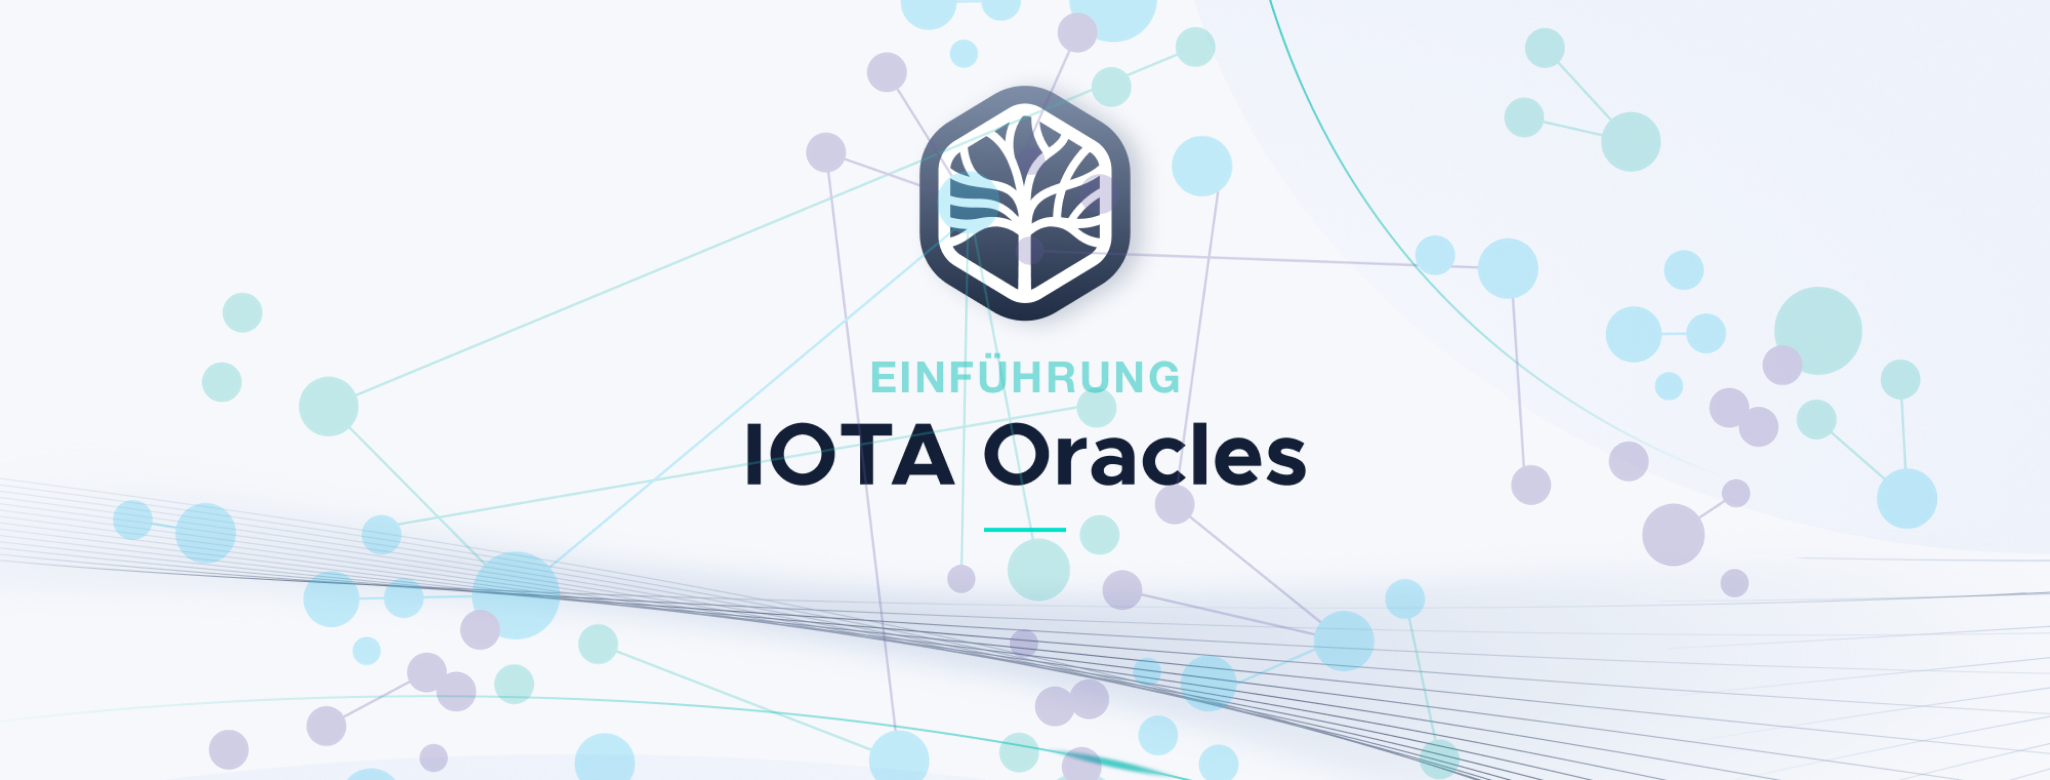 IOTA Oracle Update deutsch